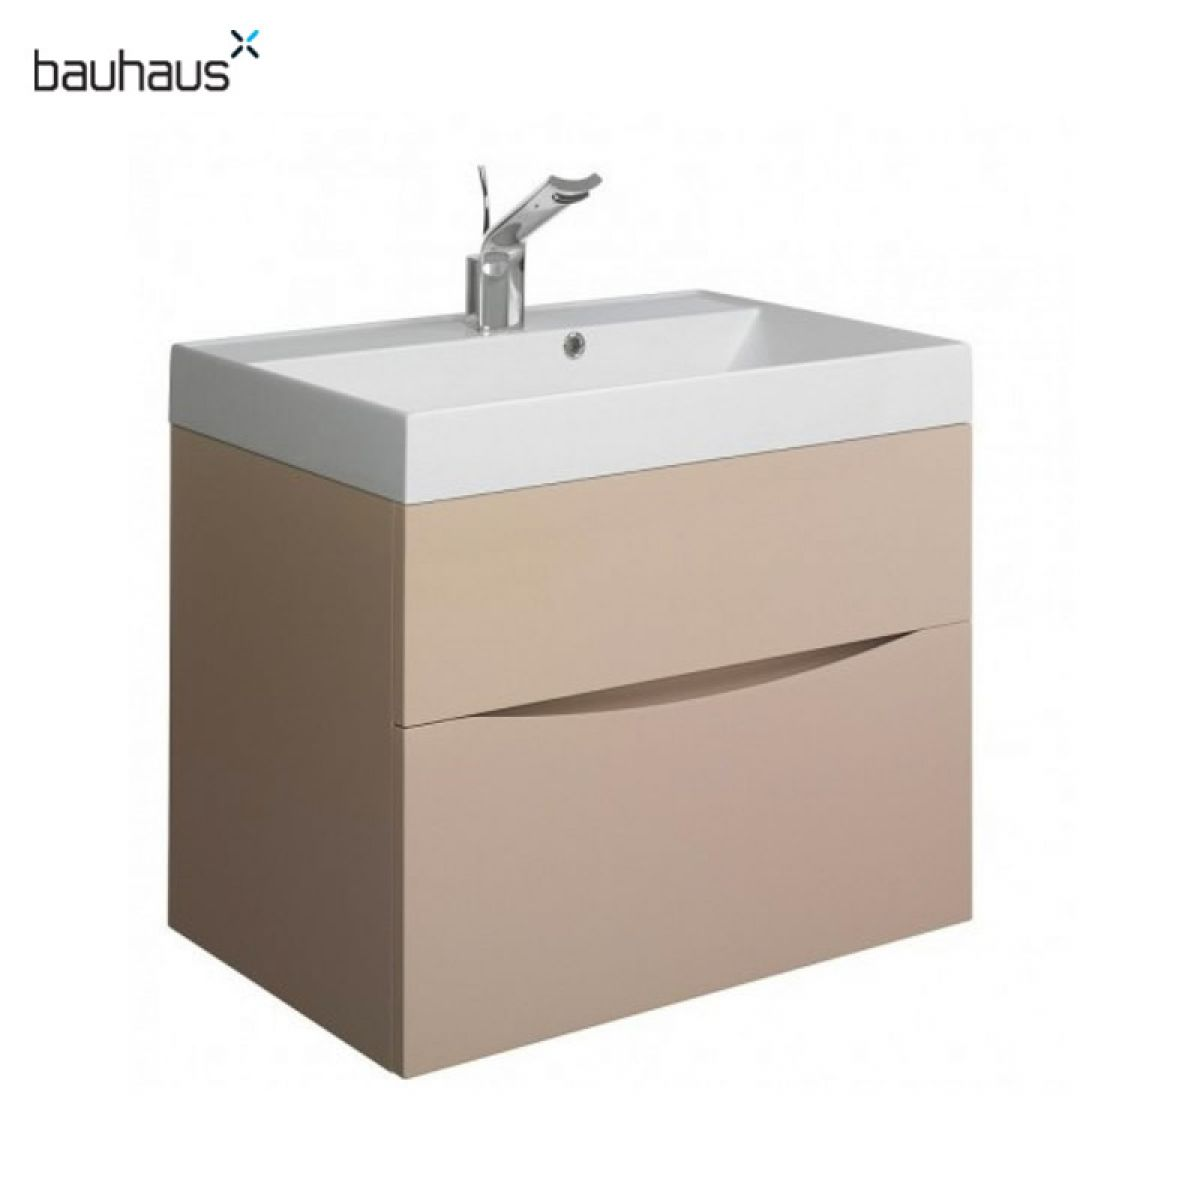 bauhaus glide ii 70 wall hung vanity unit with basin ukbathrooms